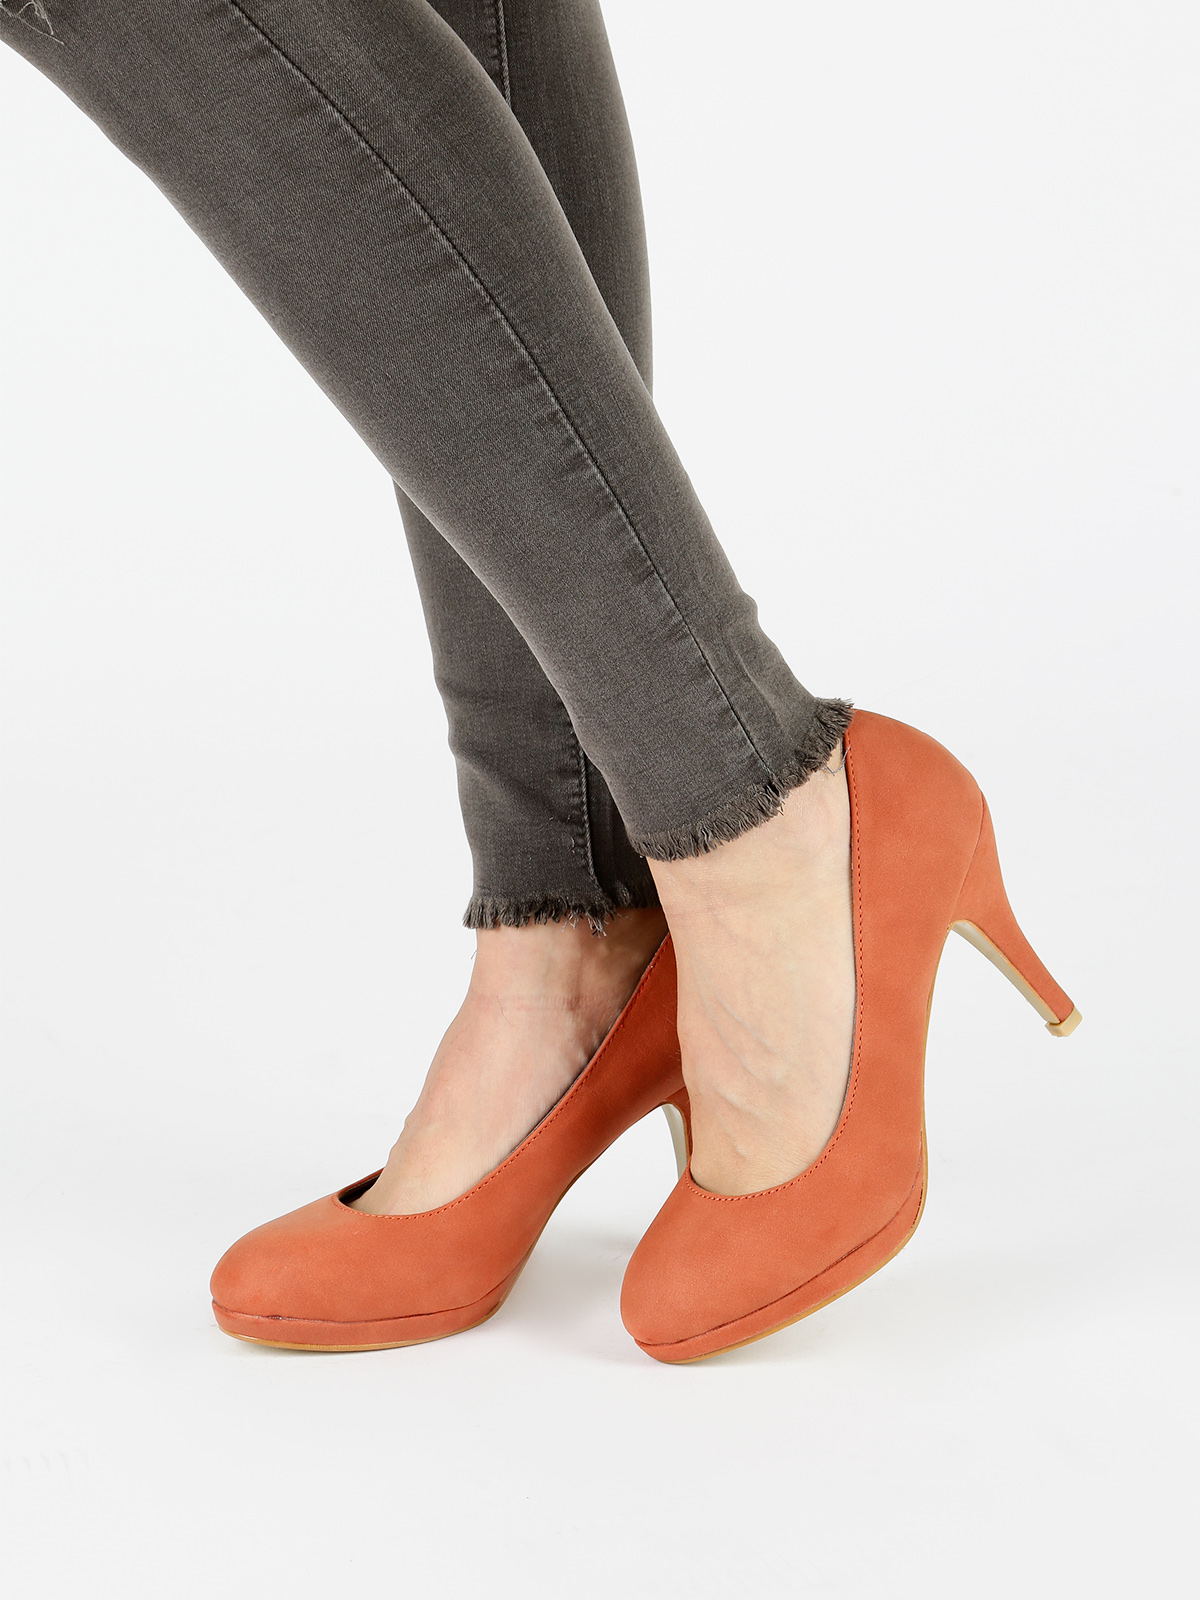 Pumps Medium Heel-In Womens Pumps From Shoes On -2164